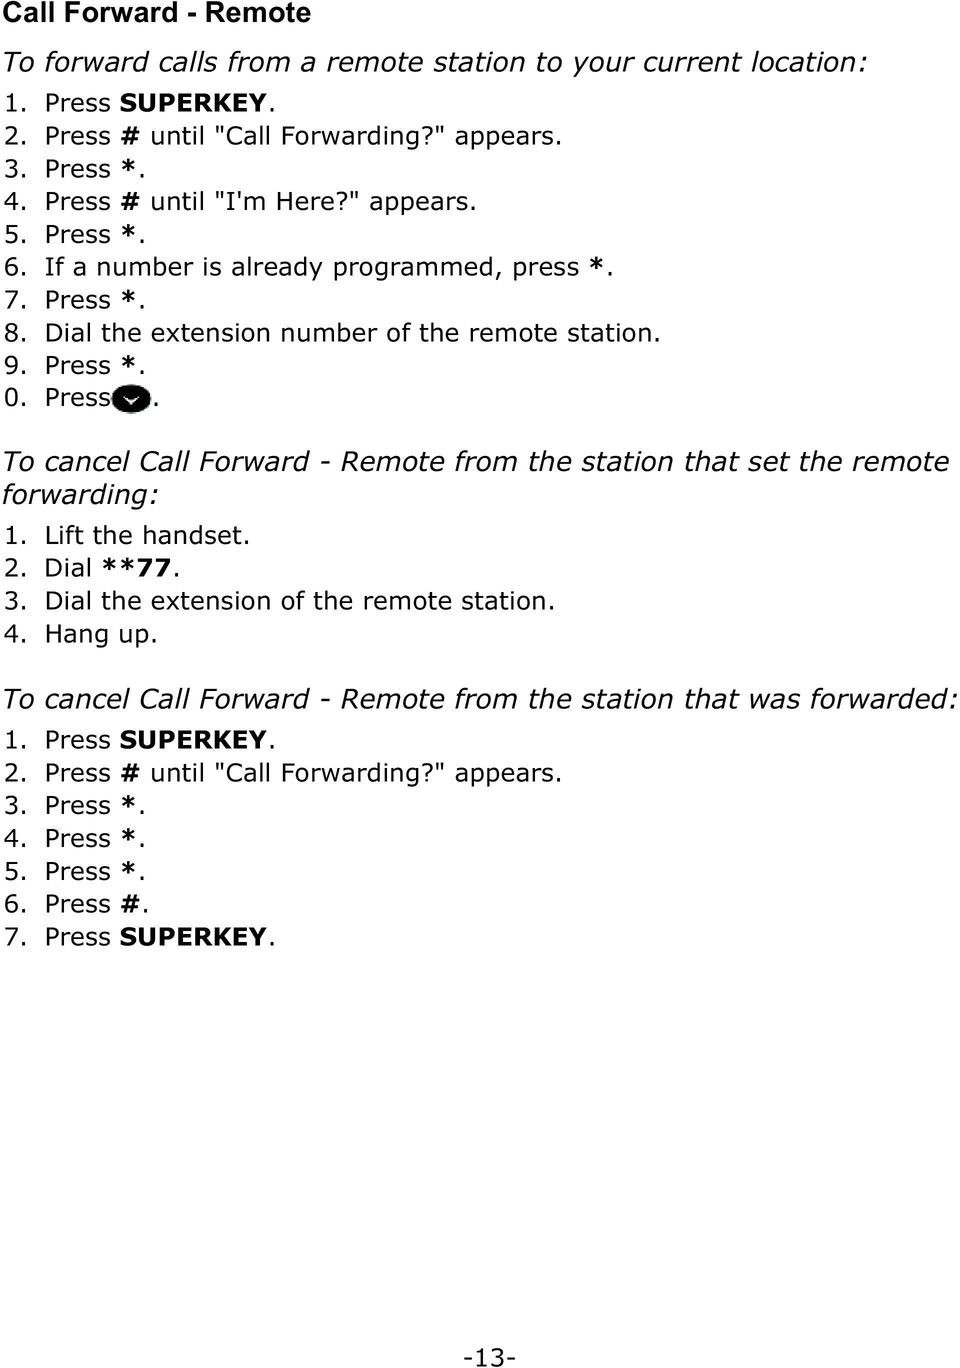 Press. To cancel Call Forward - Remote from the station that set the remote forwarding: 2. Dial **77. 3. Dial the extension of the remote station. 4. Hang up.